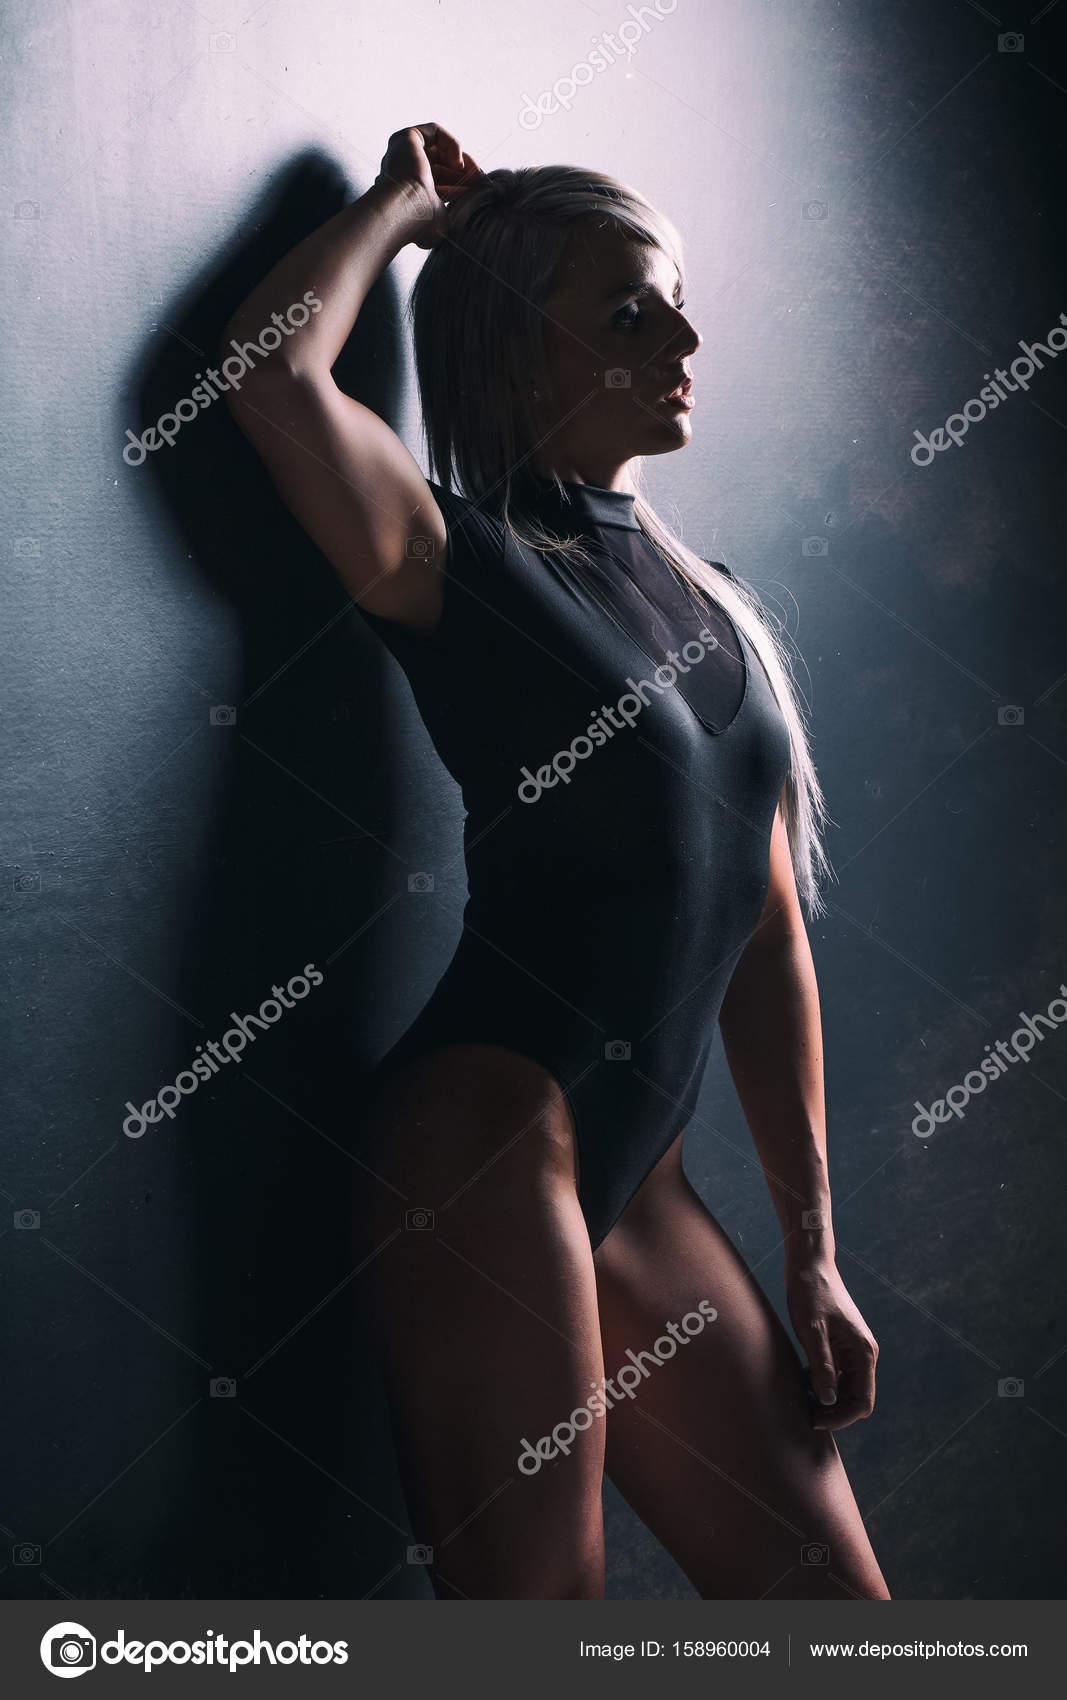 dramatic studio lighting. Sexy Female Fitness Model In A Studio With Dramatic Lighting And \u2014 Stock Photo